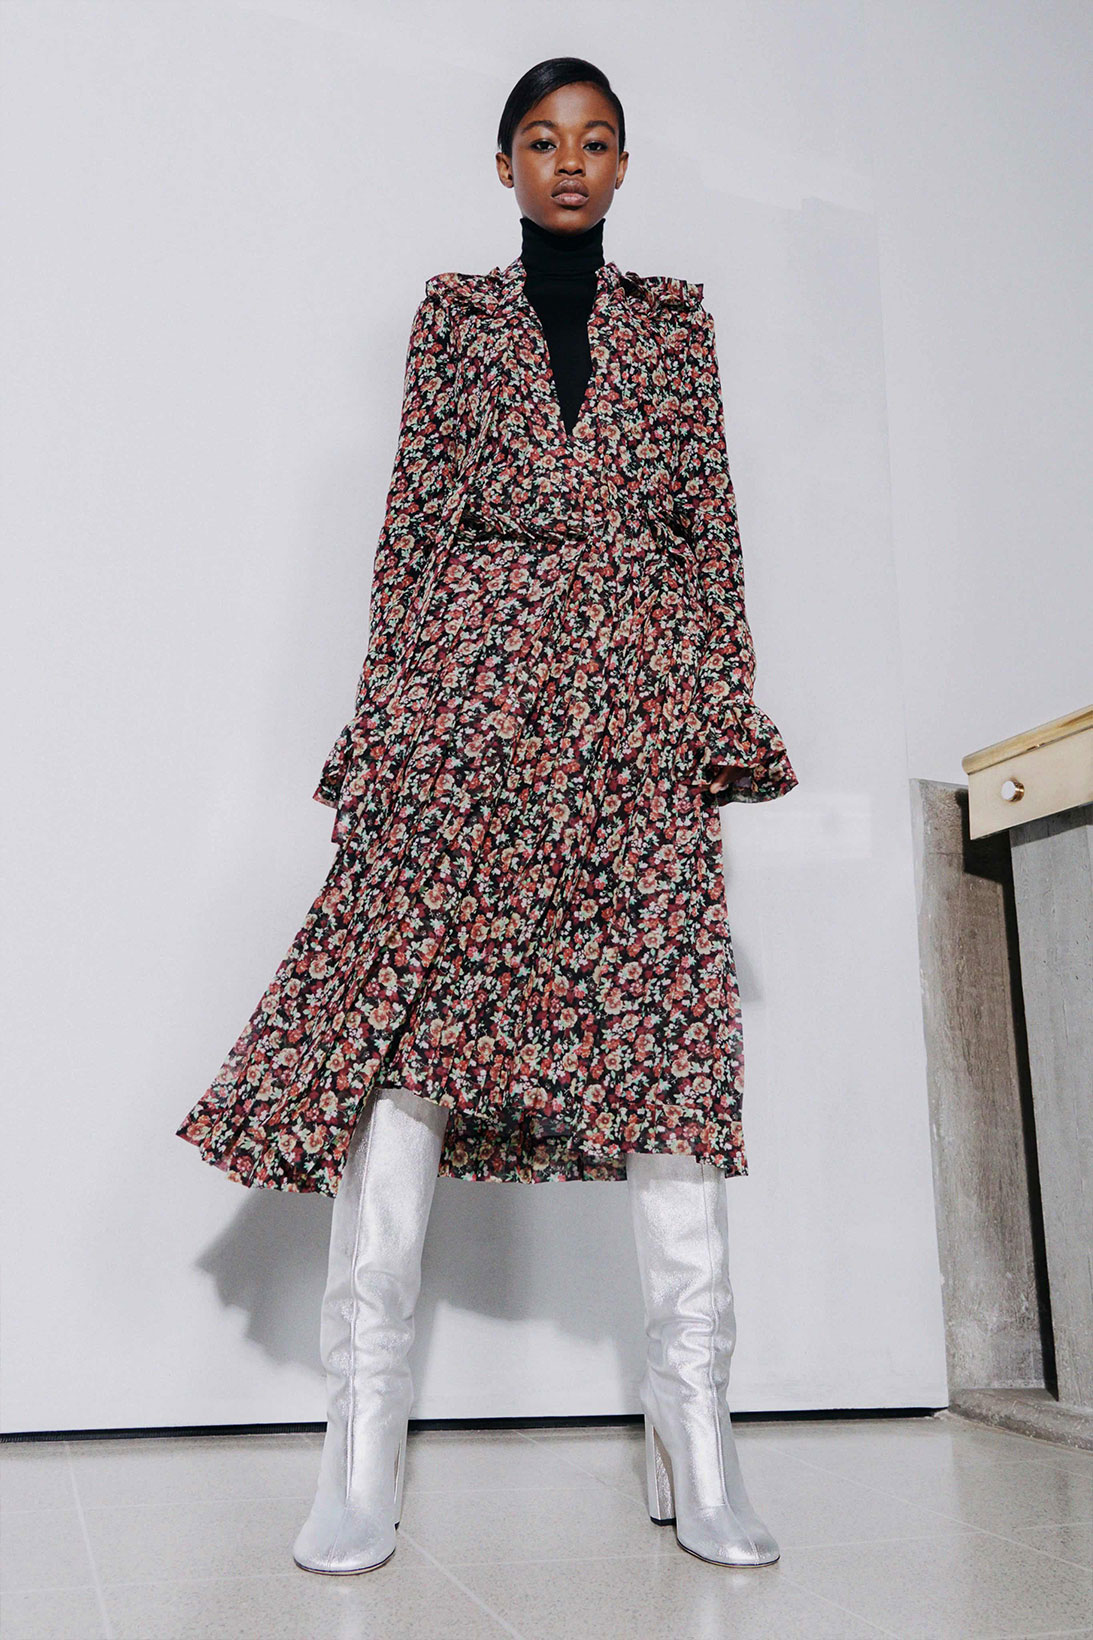 victoria beckham fall winter 2021 fw21 collection floral frill dress silver boots